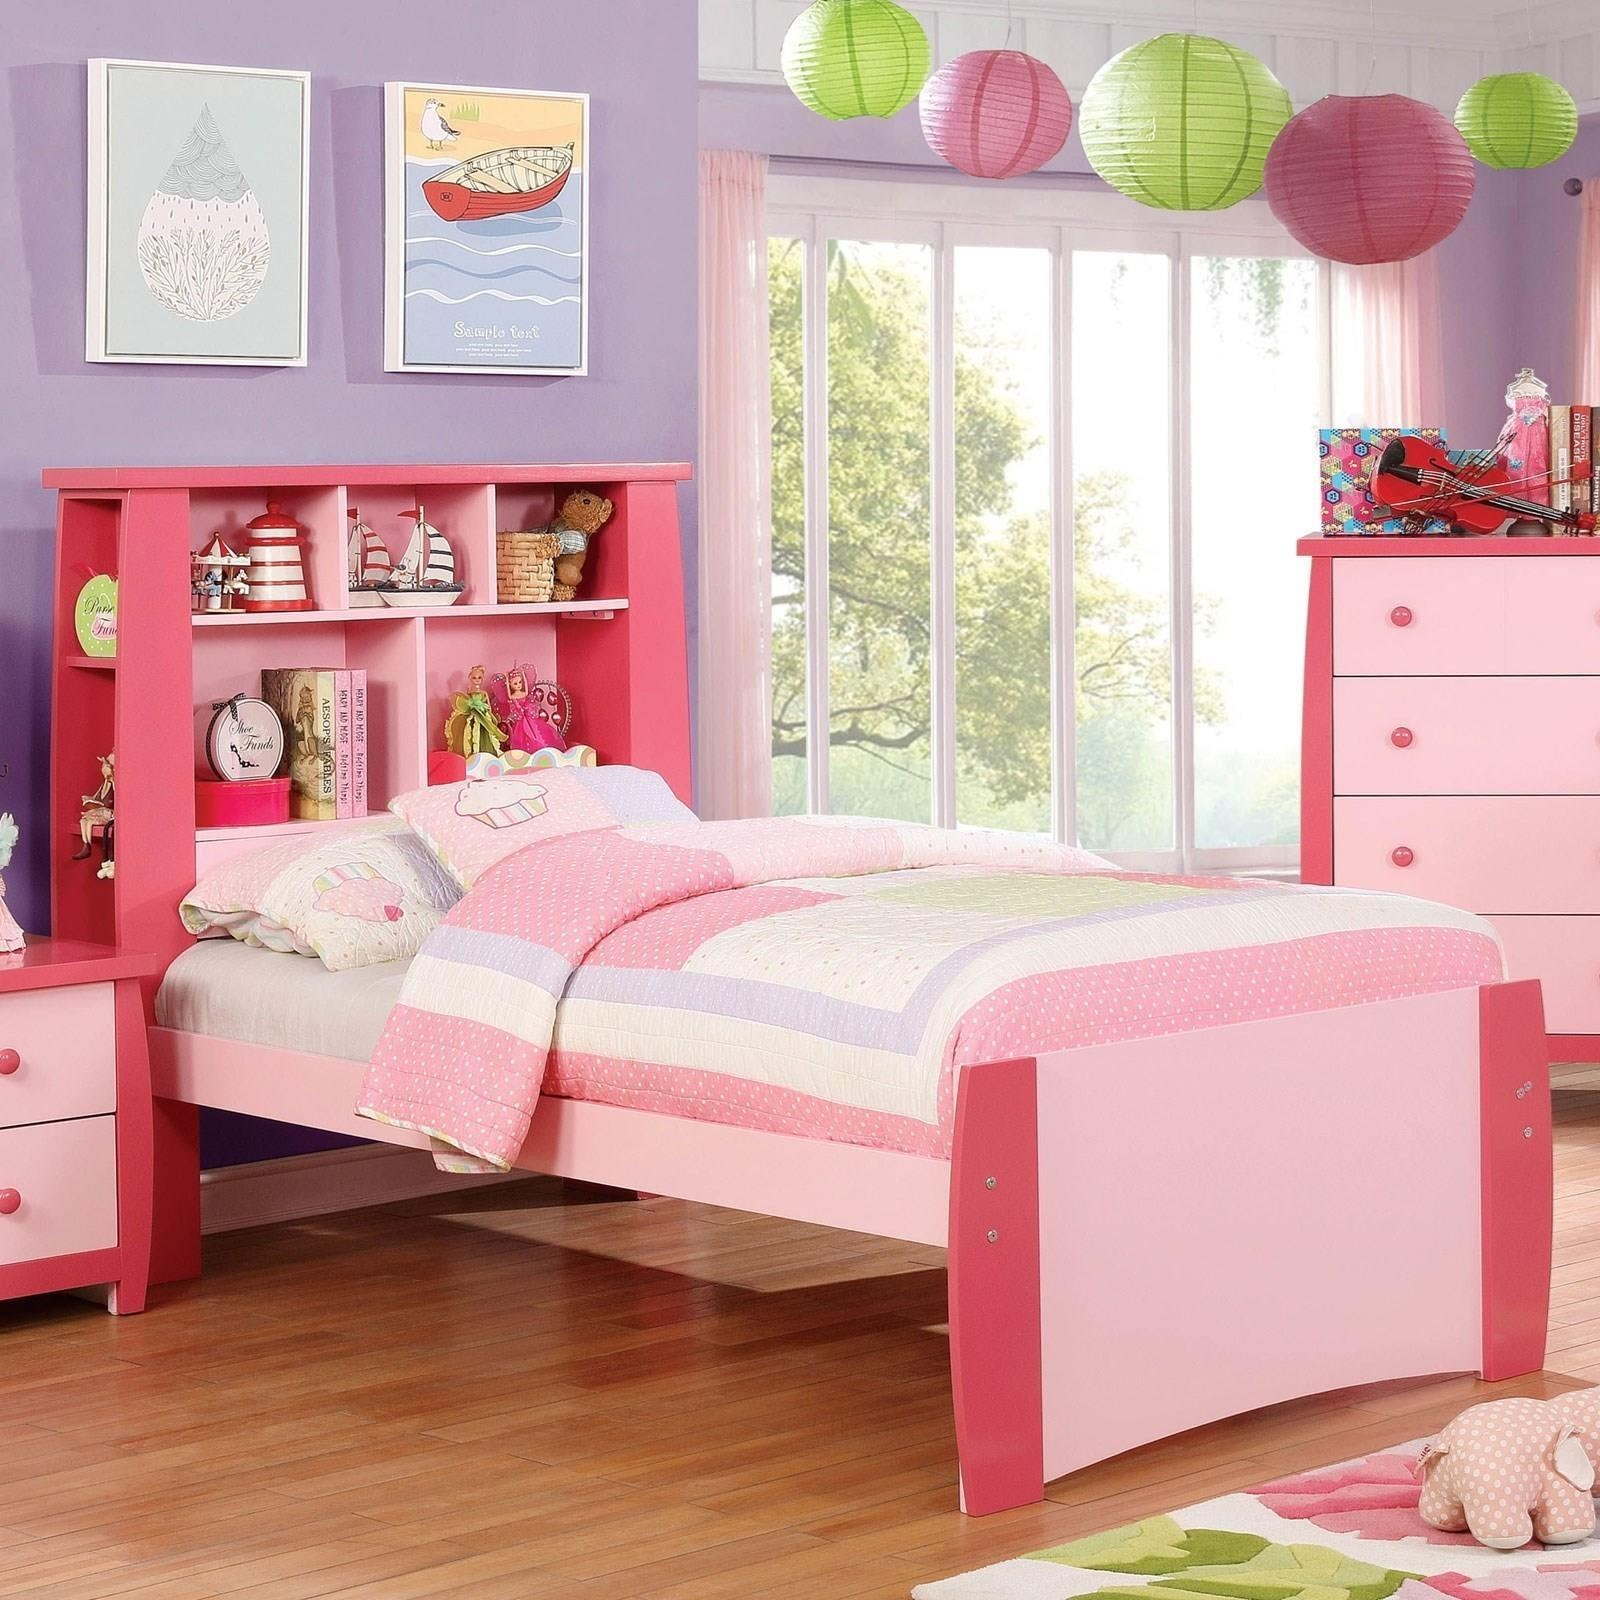 Marlee Twin Bed by Furniture of America at Dream Home Interiors